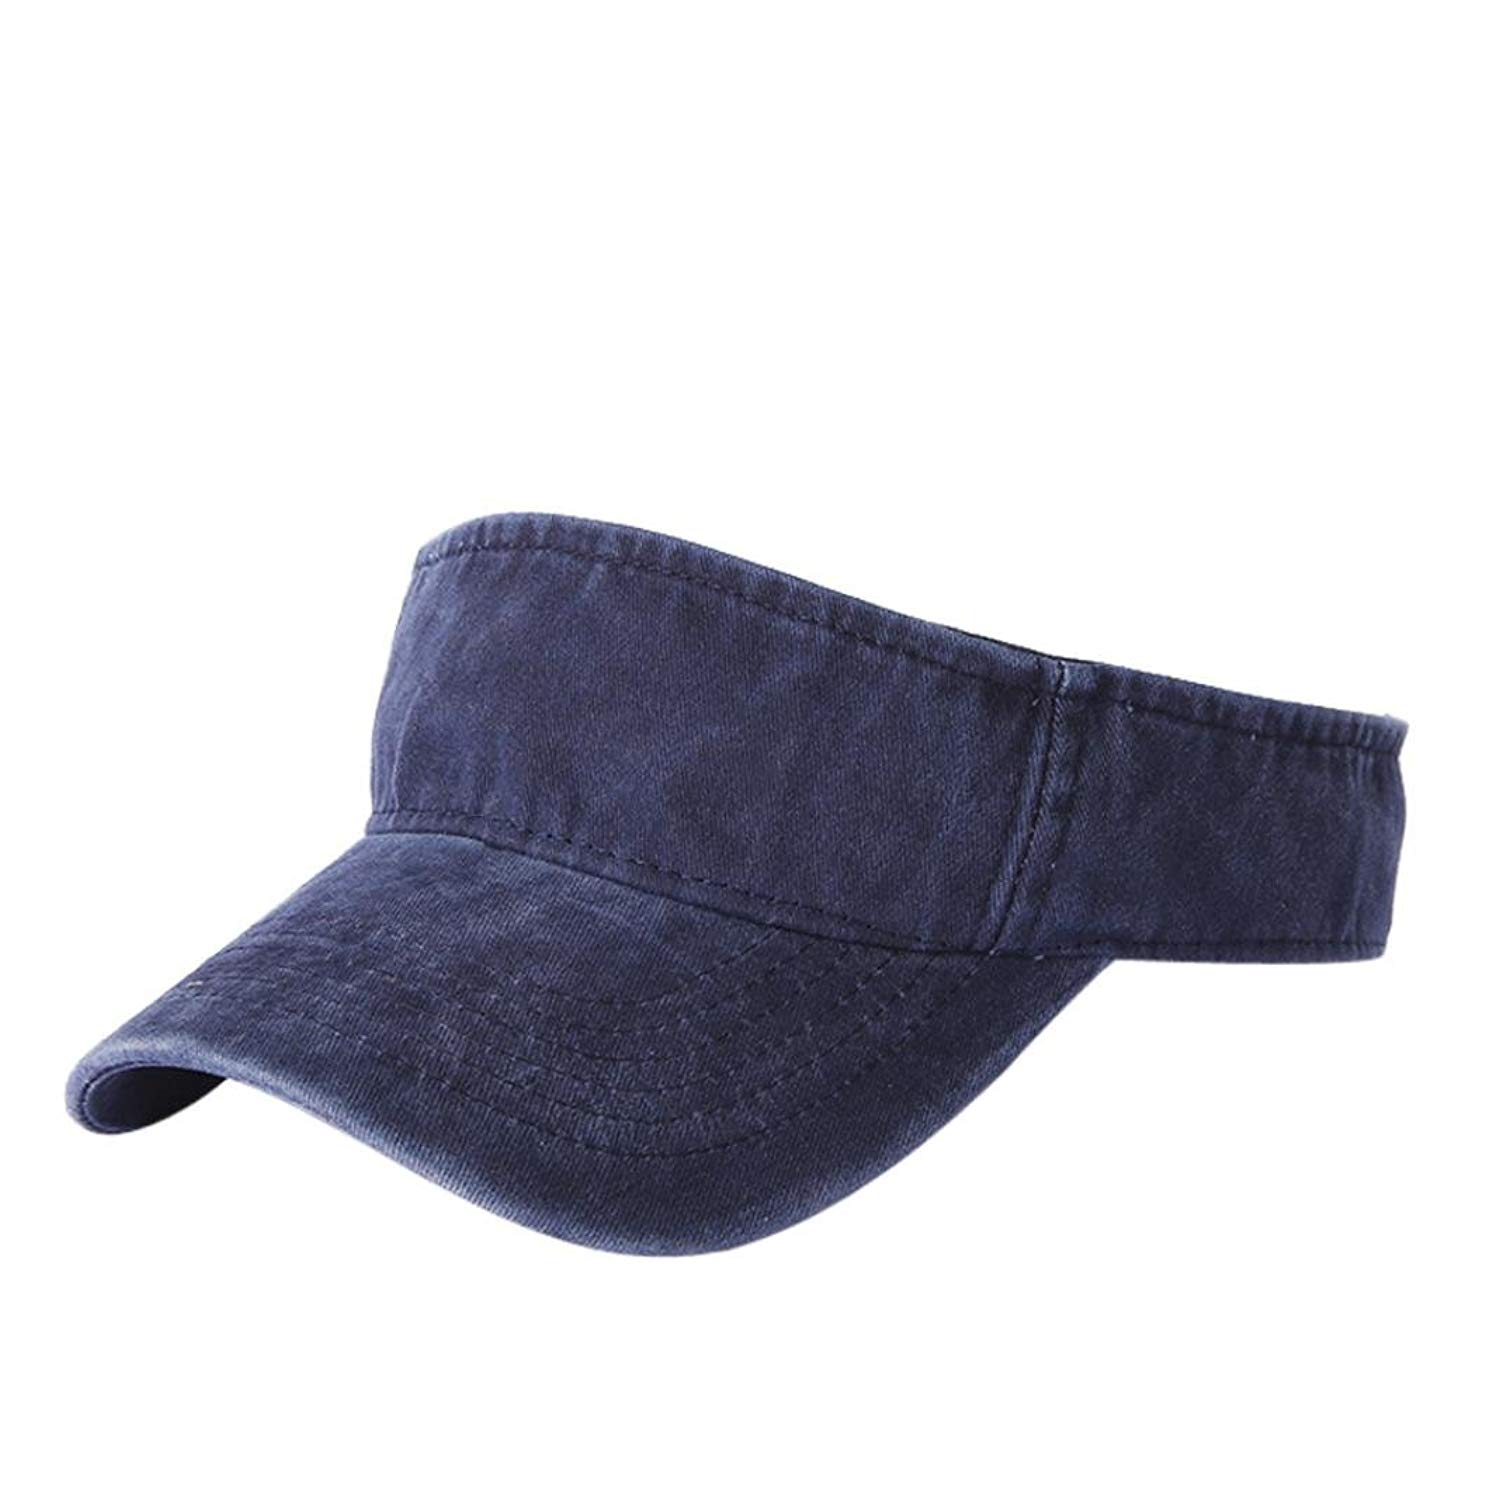 5b978dc1 Cheap Polo Caps, find Polo Caps deals on line at Alibaba.com